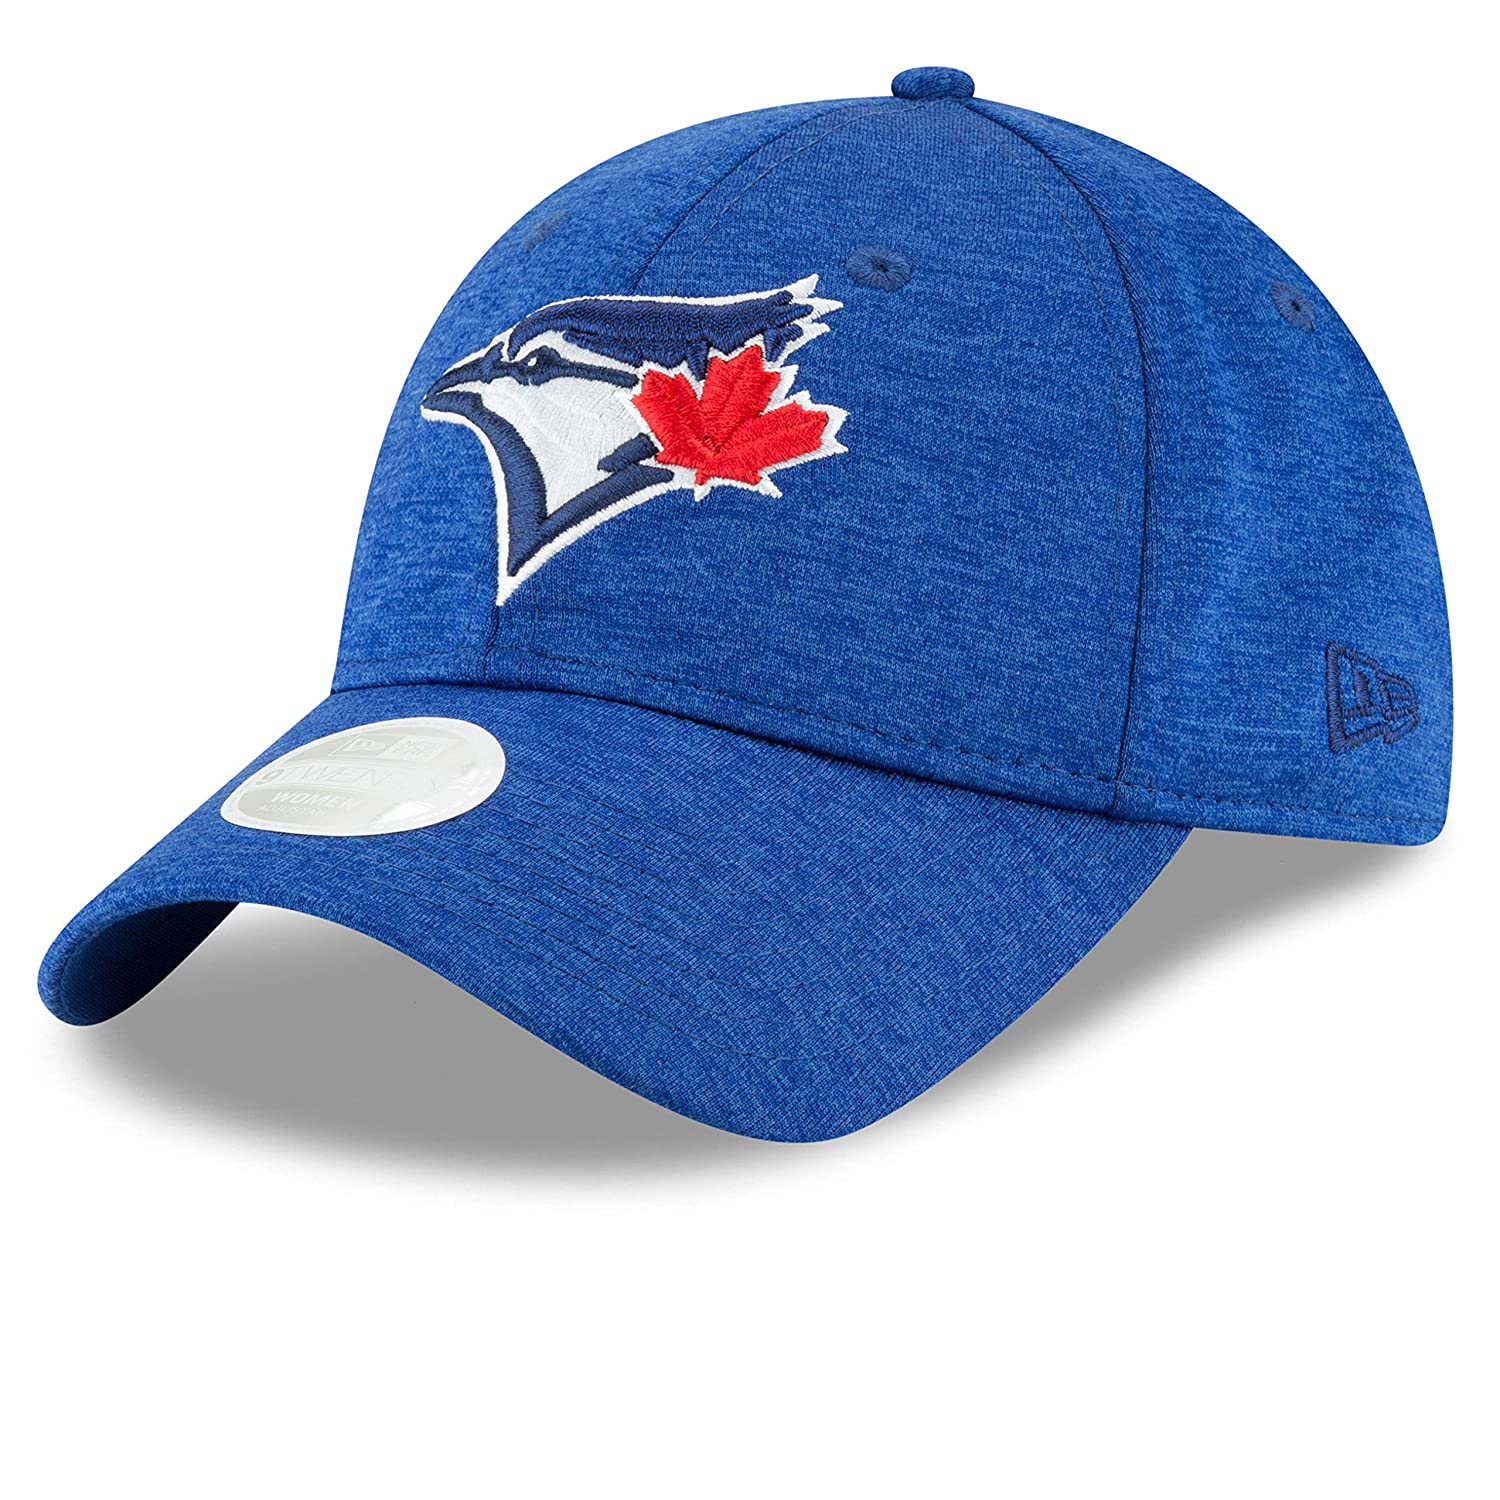 Toronto Blue Jays Women's Shadow Twist 9TWENTY Adjustable Hat - Size One Size New Era